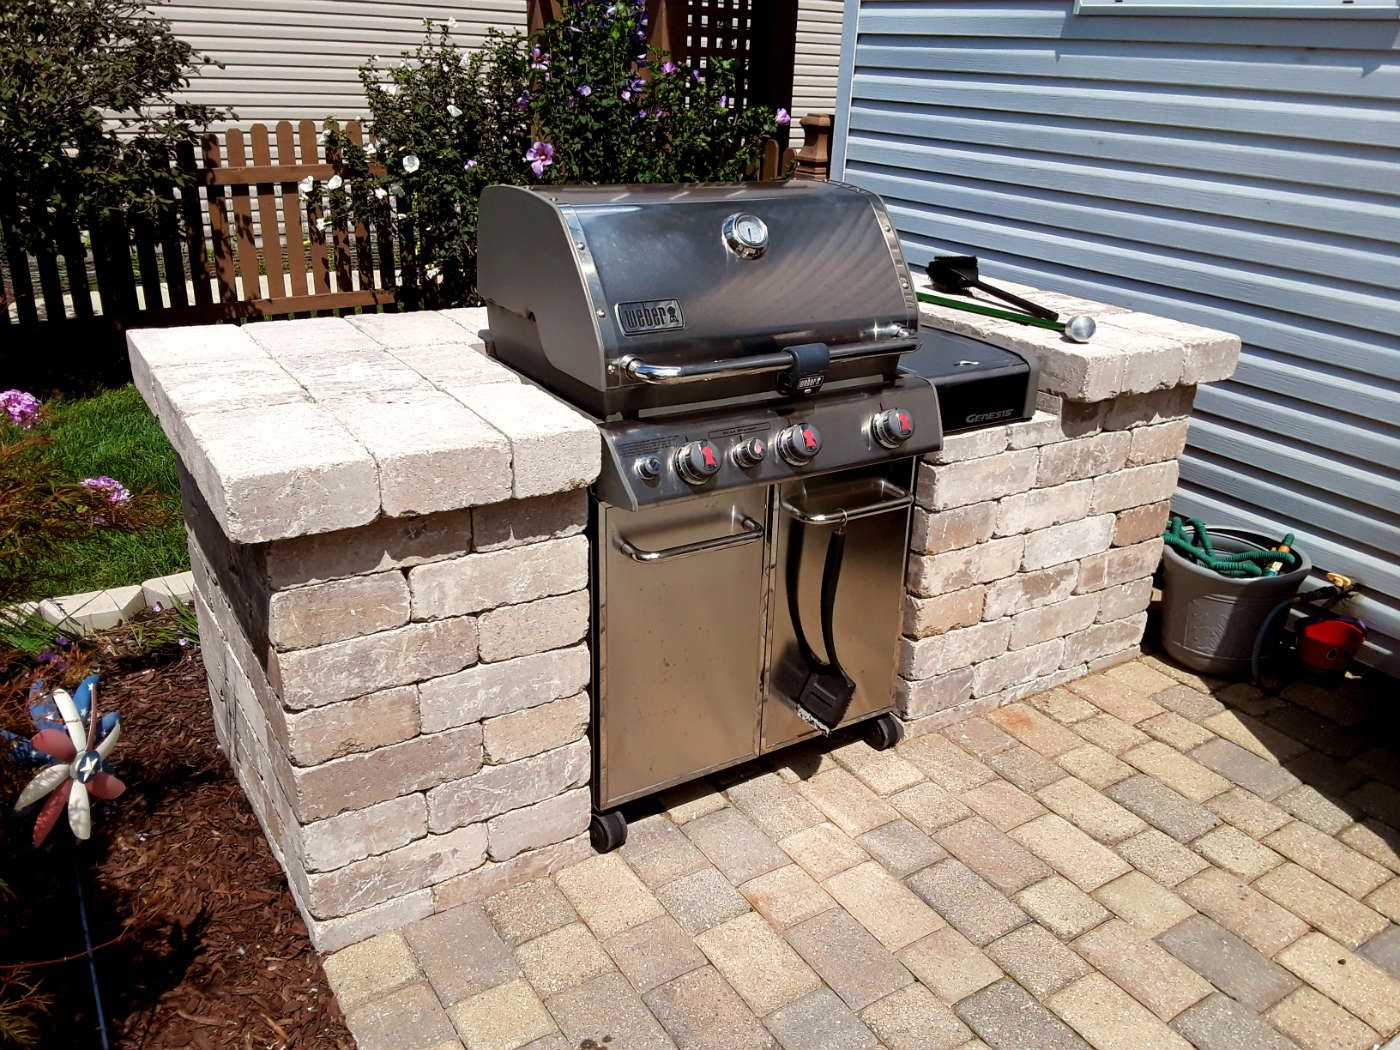 This Grill Surround Was Custom Designed And Built By Joliet Il Grill Surround Builder Archadeck Of Outdoor Barbeque Outdoor Grill Station Outdoor Grill Area